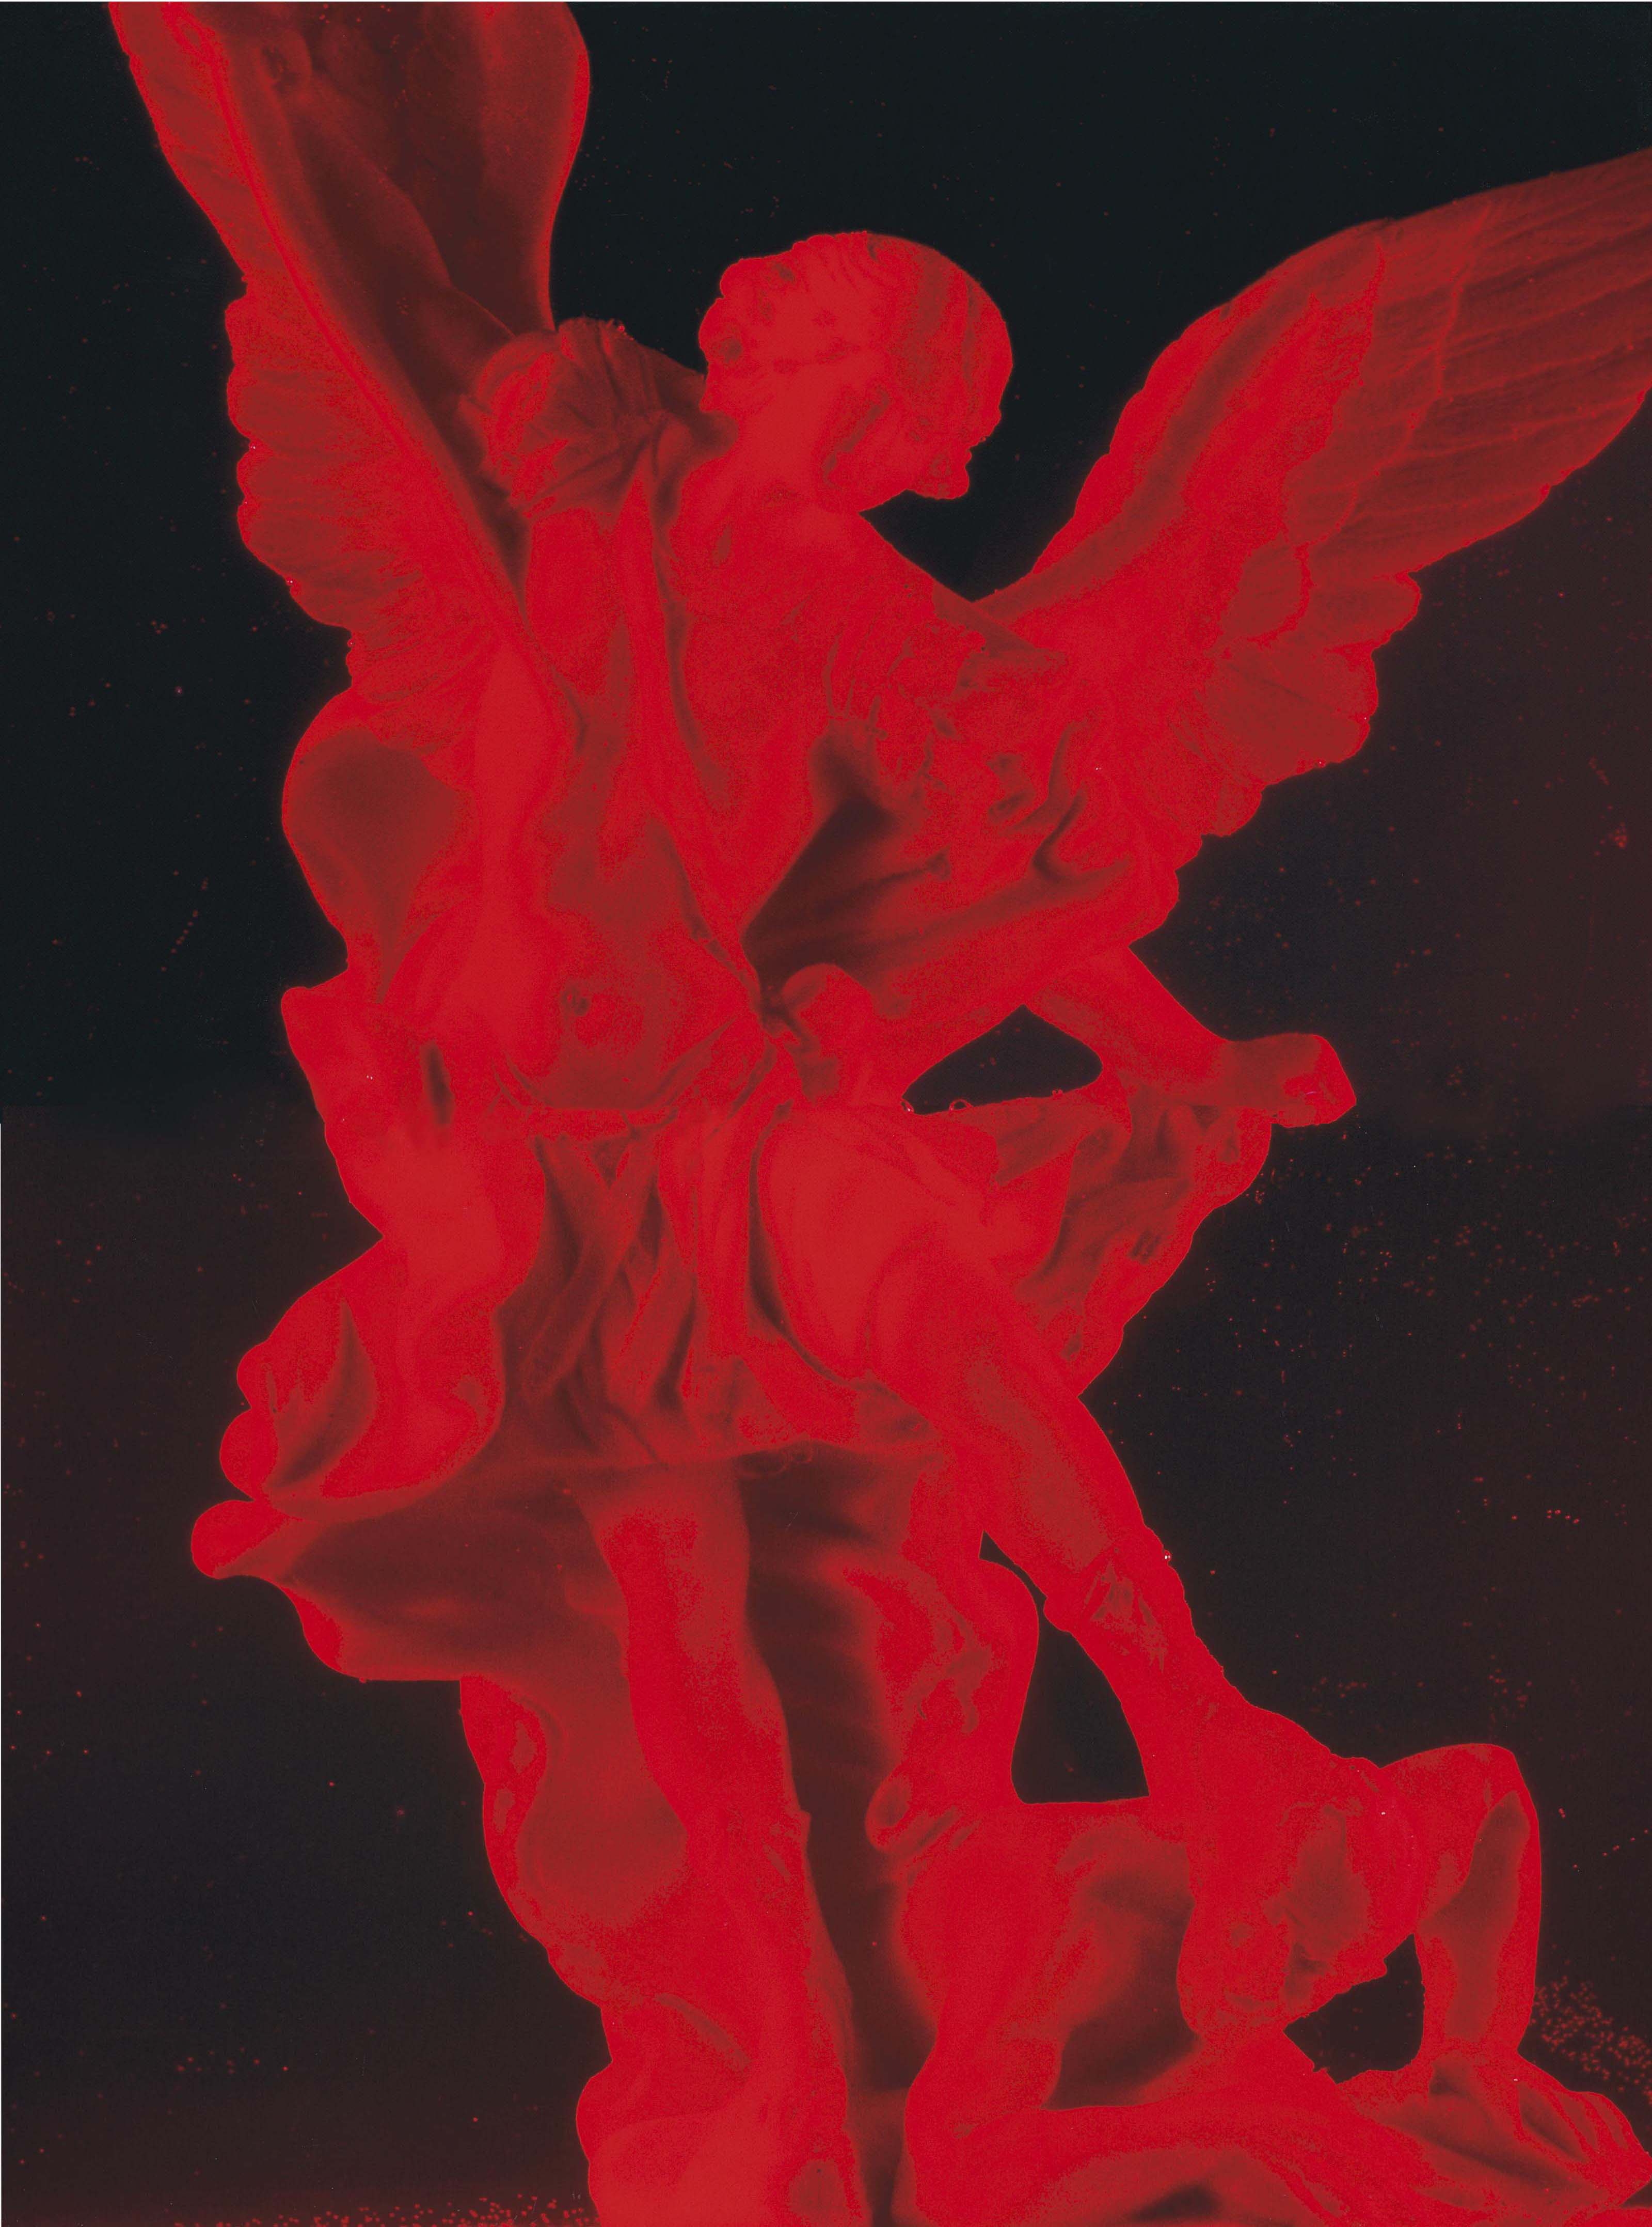 St. Michael's Blood